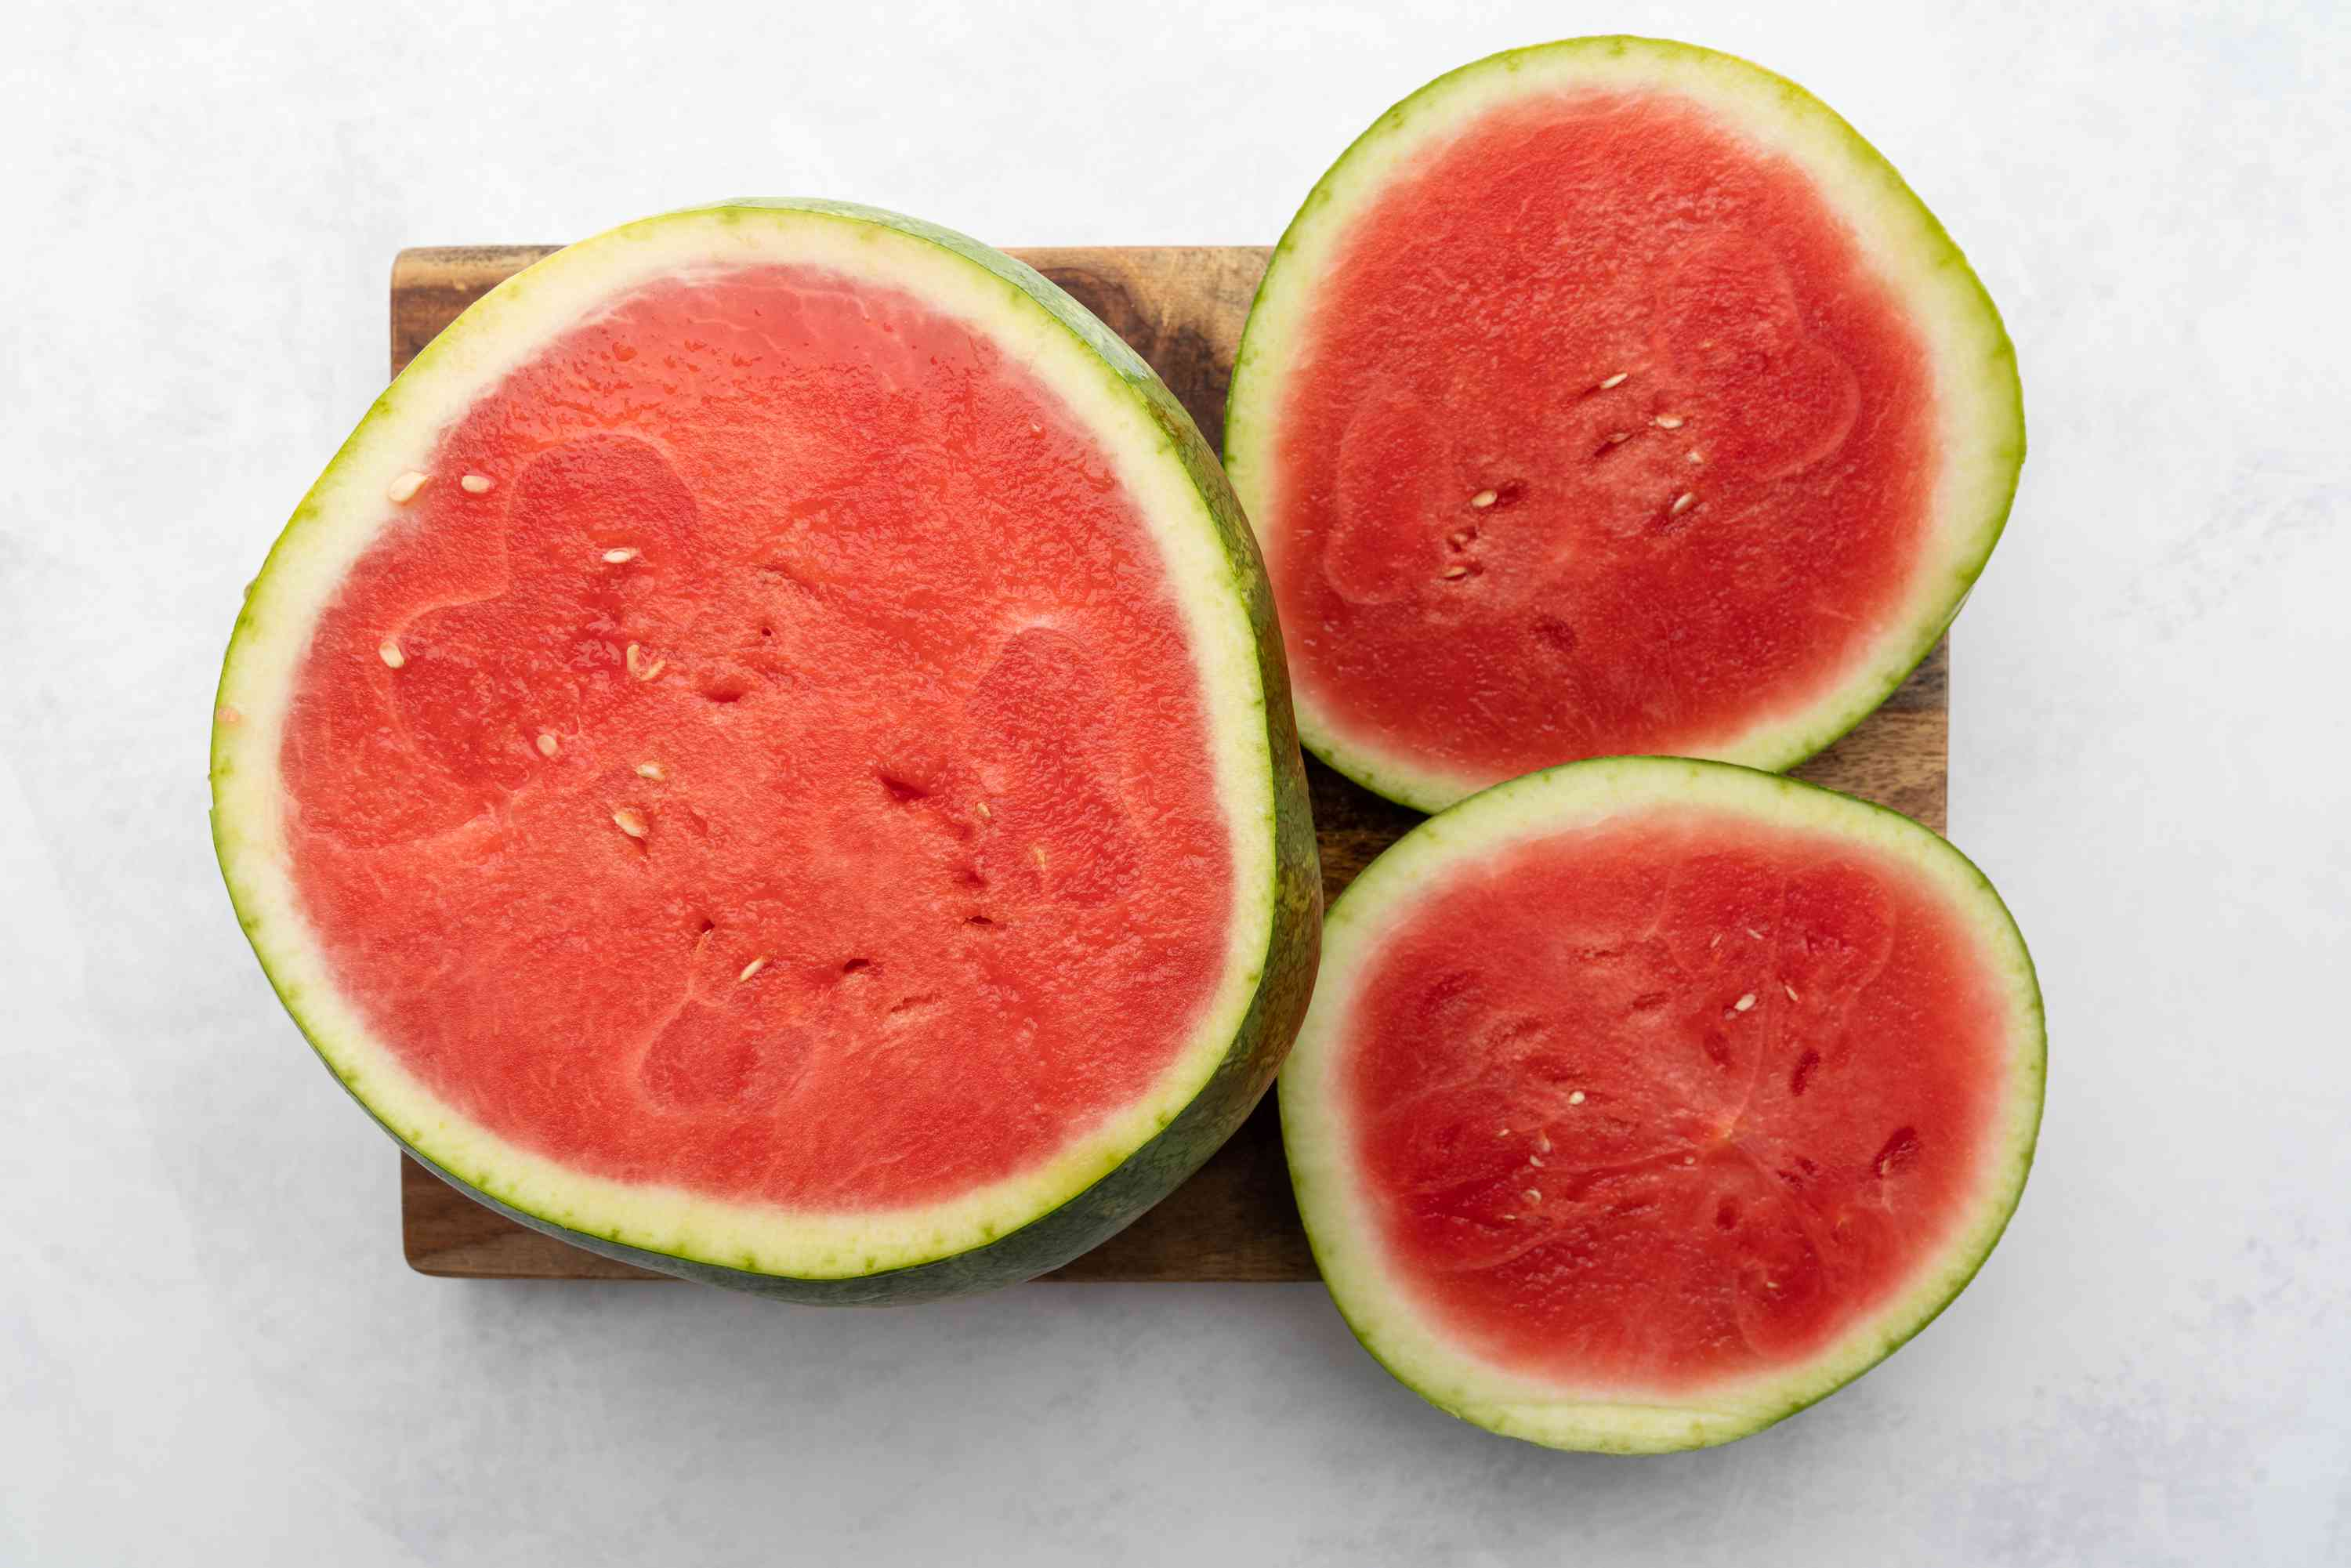 Watermelon with top and bottom sliced off